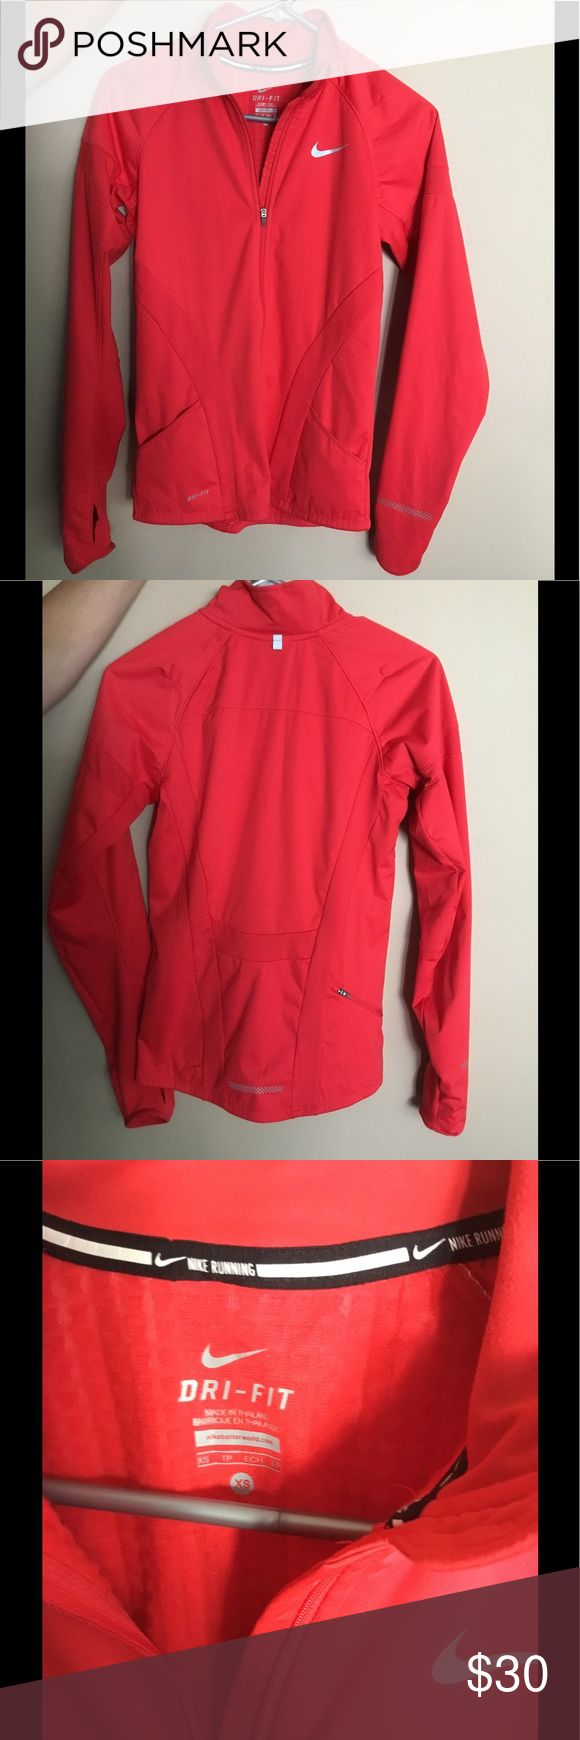 New Nike Dri Fit Zip Up Brand new Nike red workout zip up. Pockets on both sides and one zipper pocket on back. Sleeves have thumb holes. Beautiful details! Nike Tops Sweatshirts & Hoodies